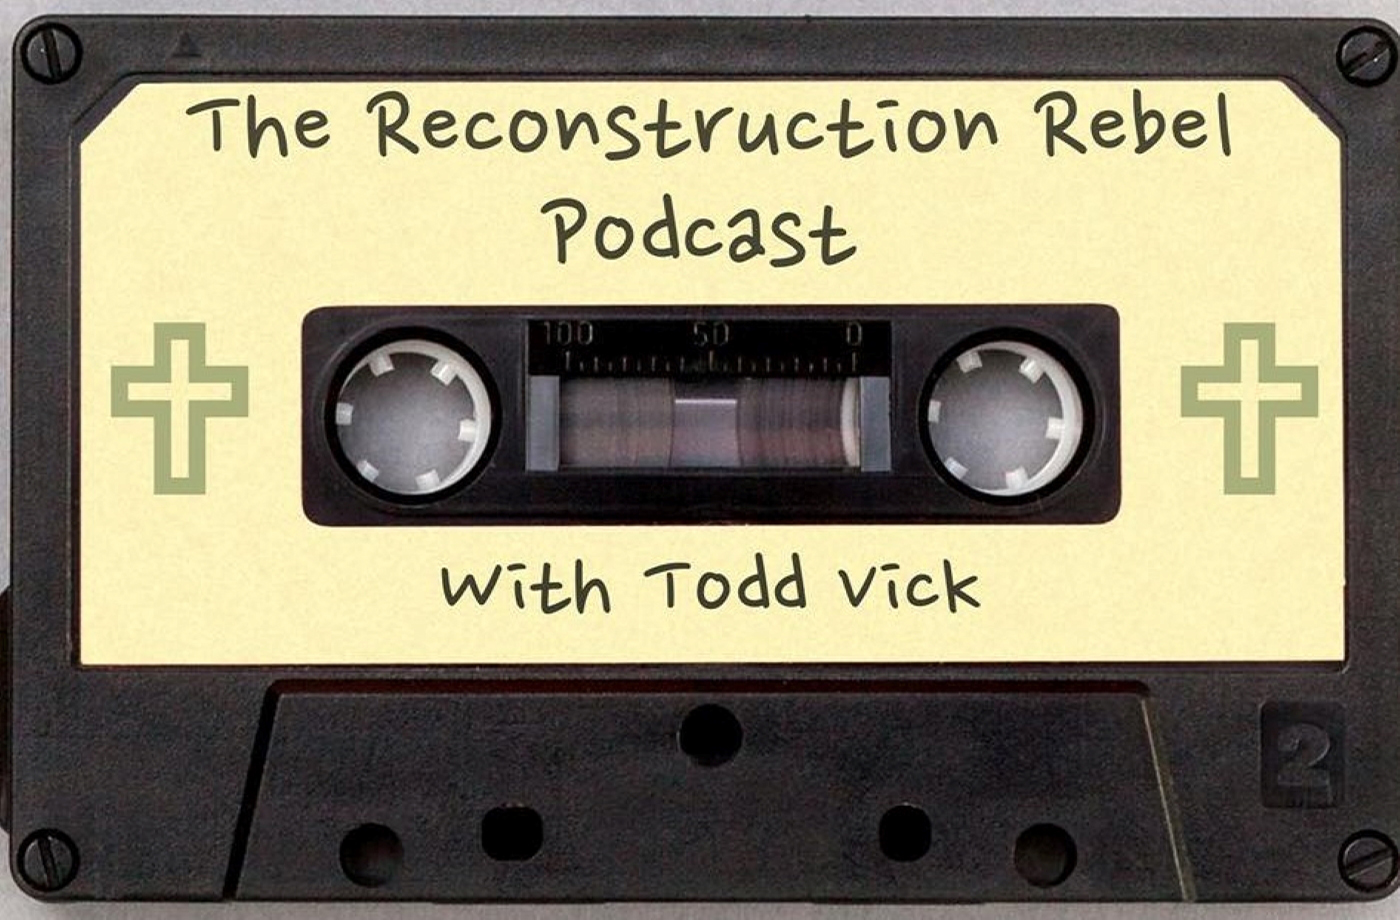 The Reconstruction Rebel Podcast with Todd Vick